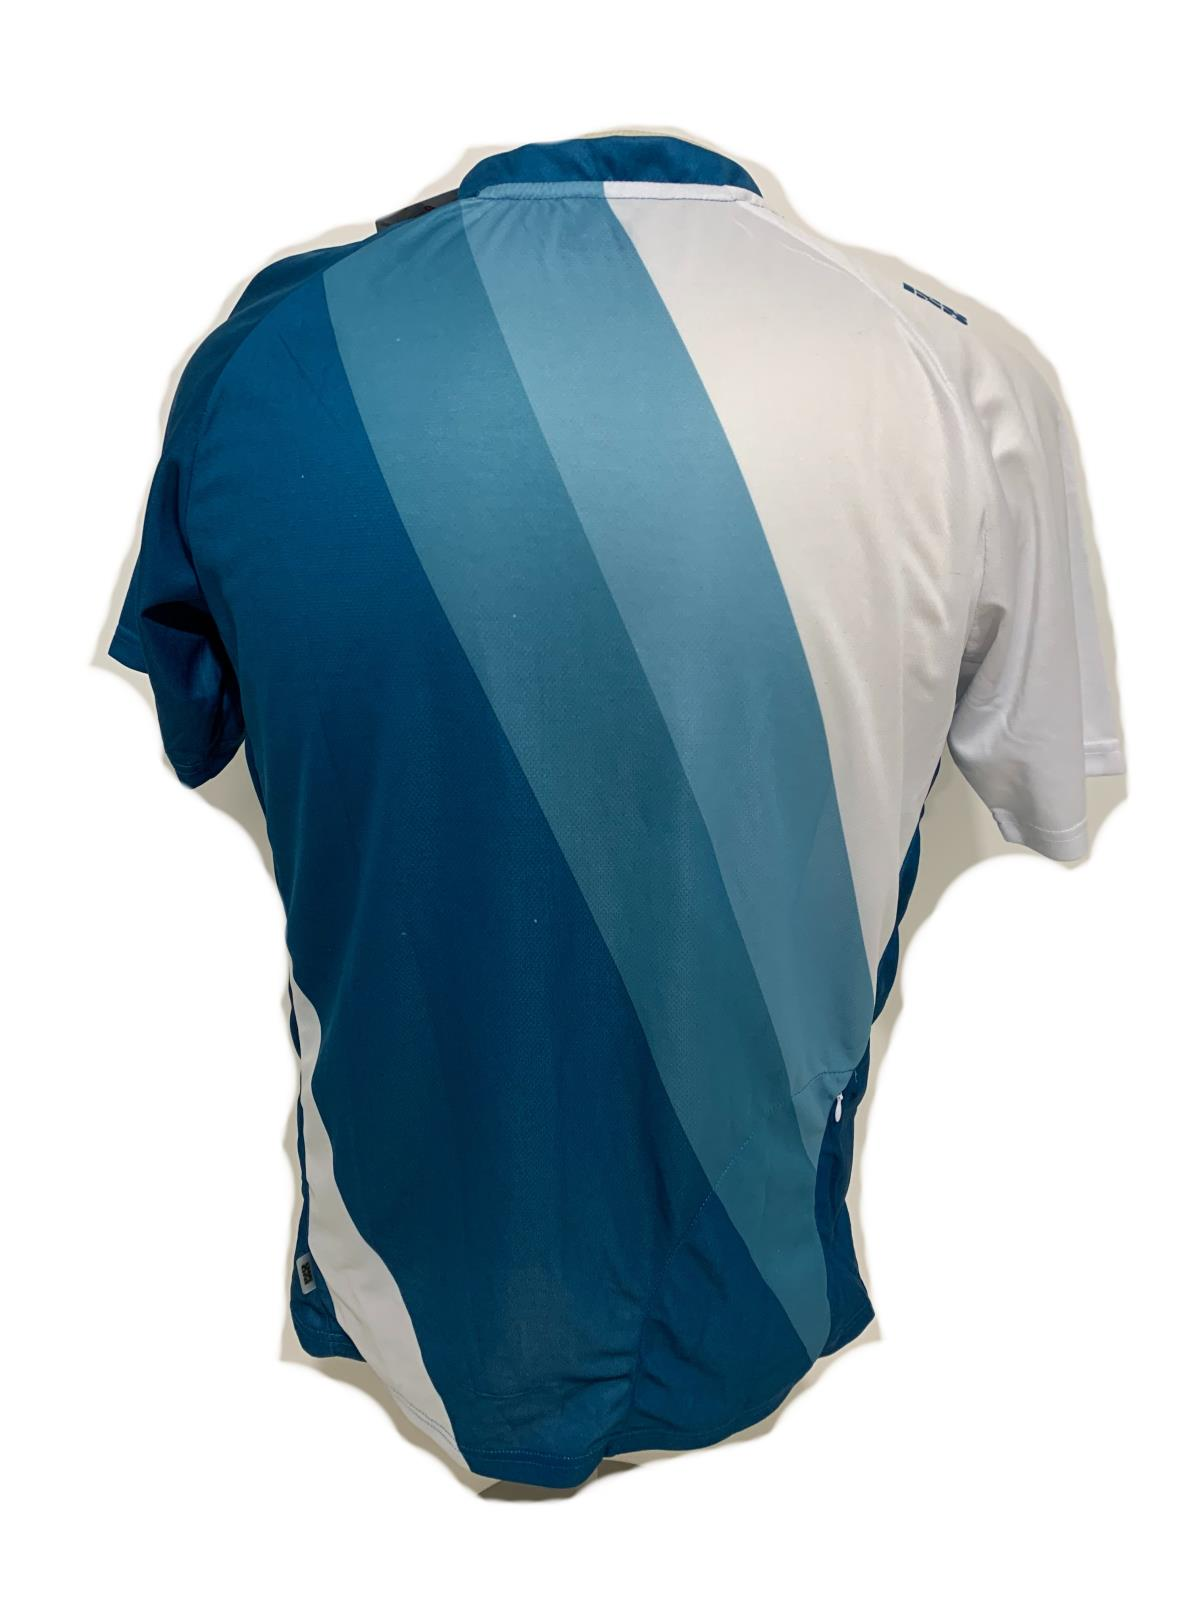 iXS Levada Trail Cycling Bike Bicycling Mens Jersey Blue LG Large New